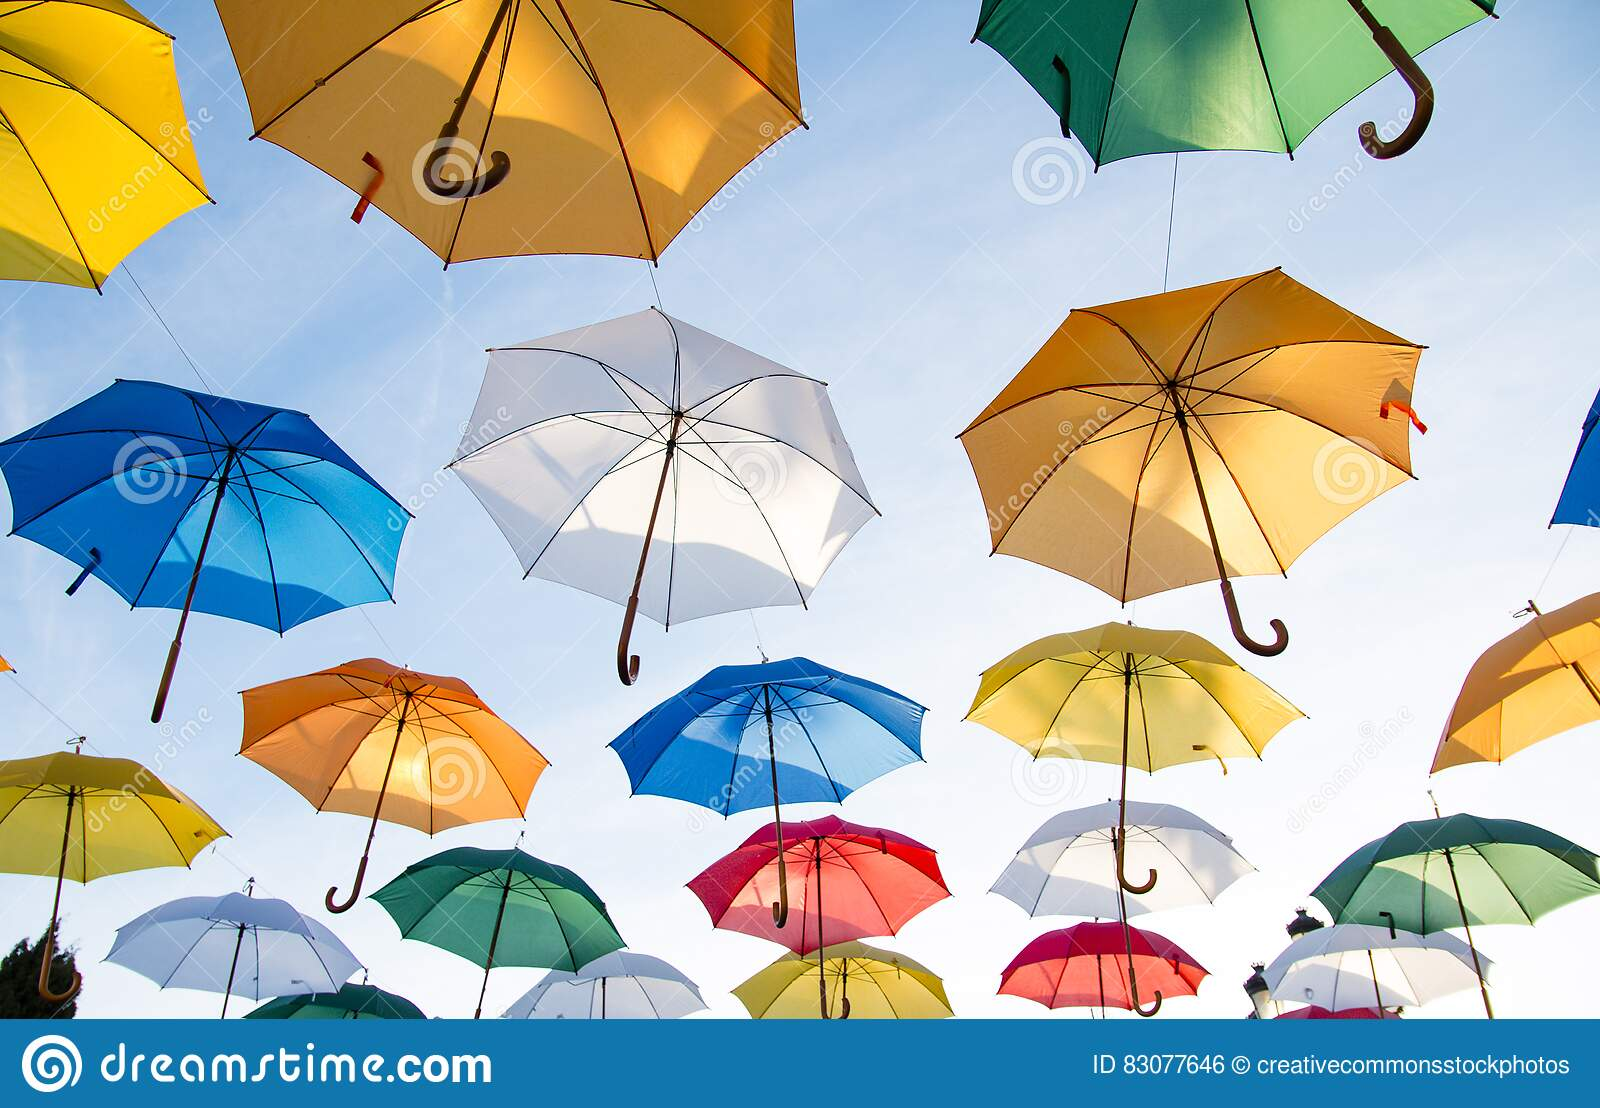 Colorful umbrellas flying in sky